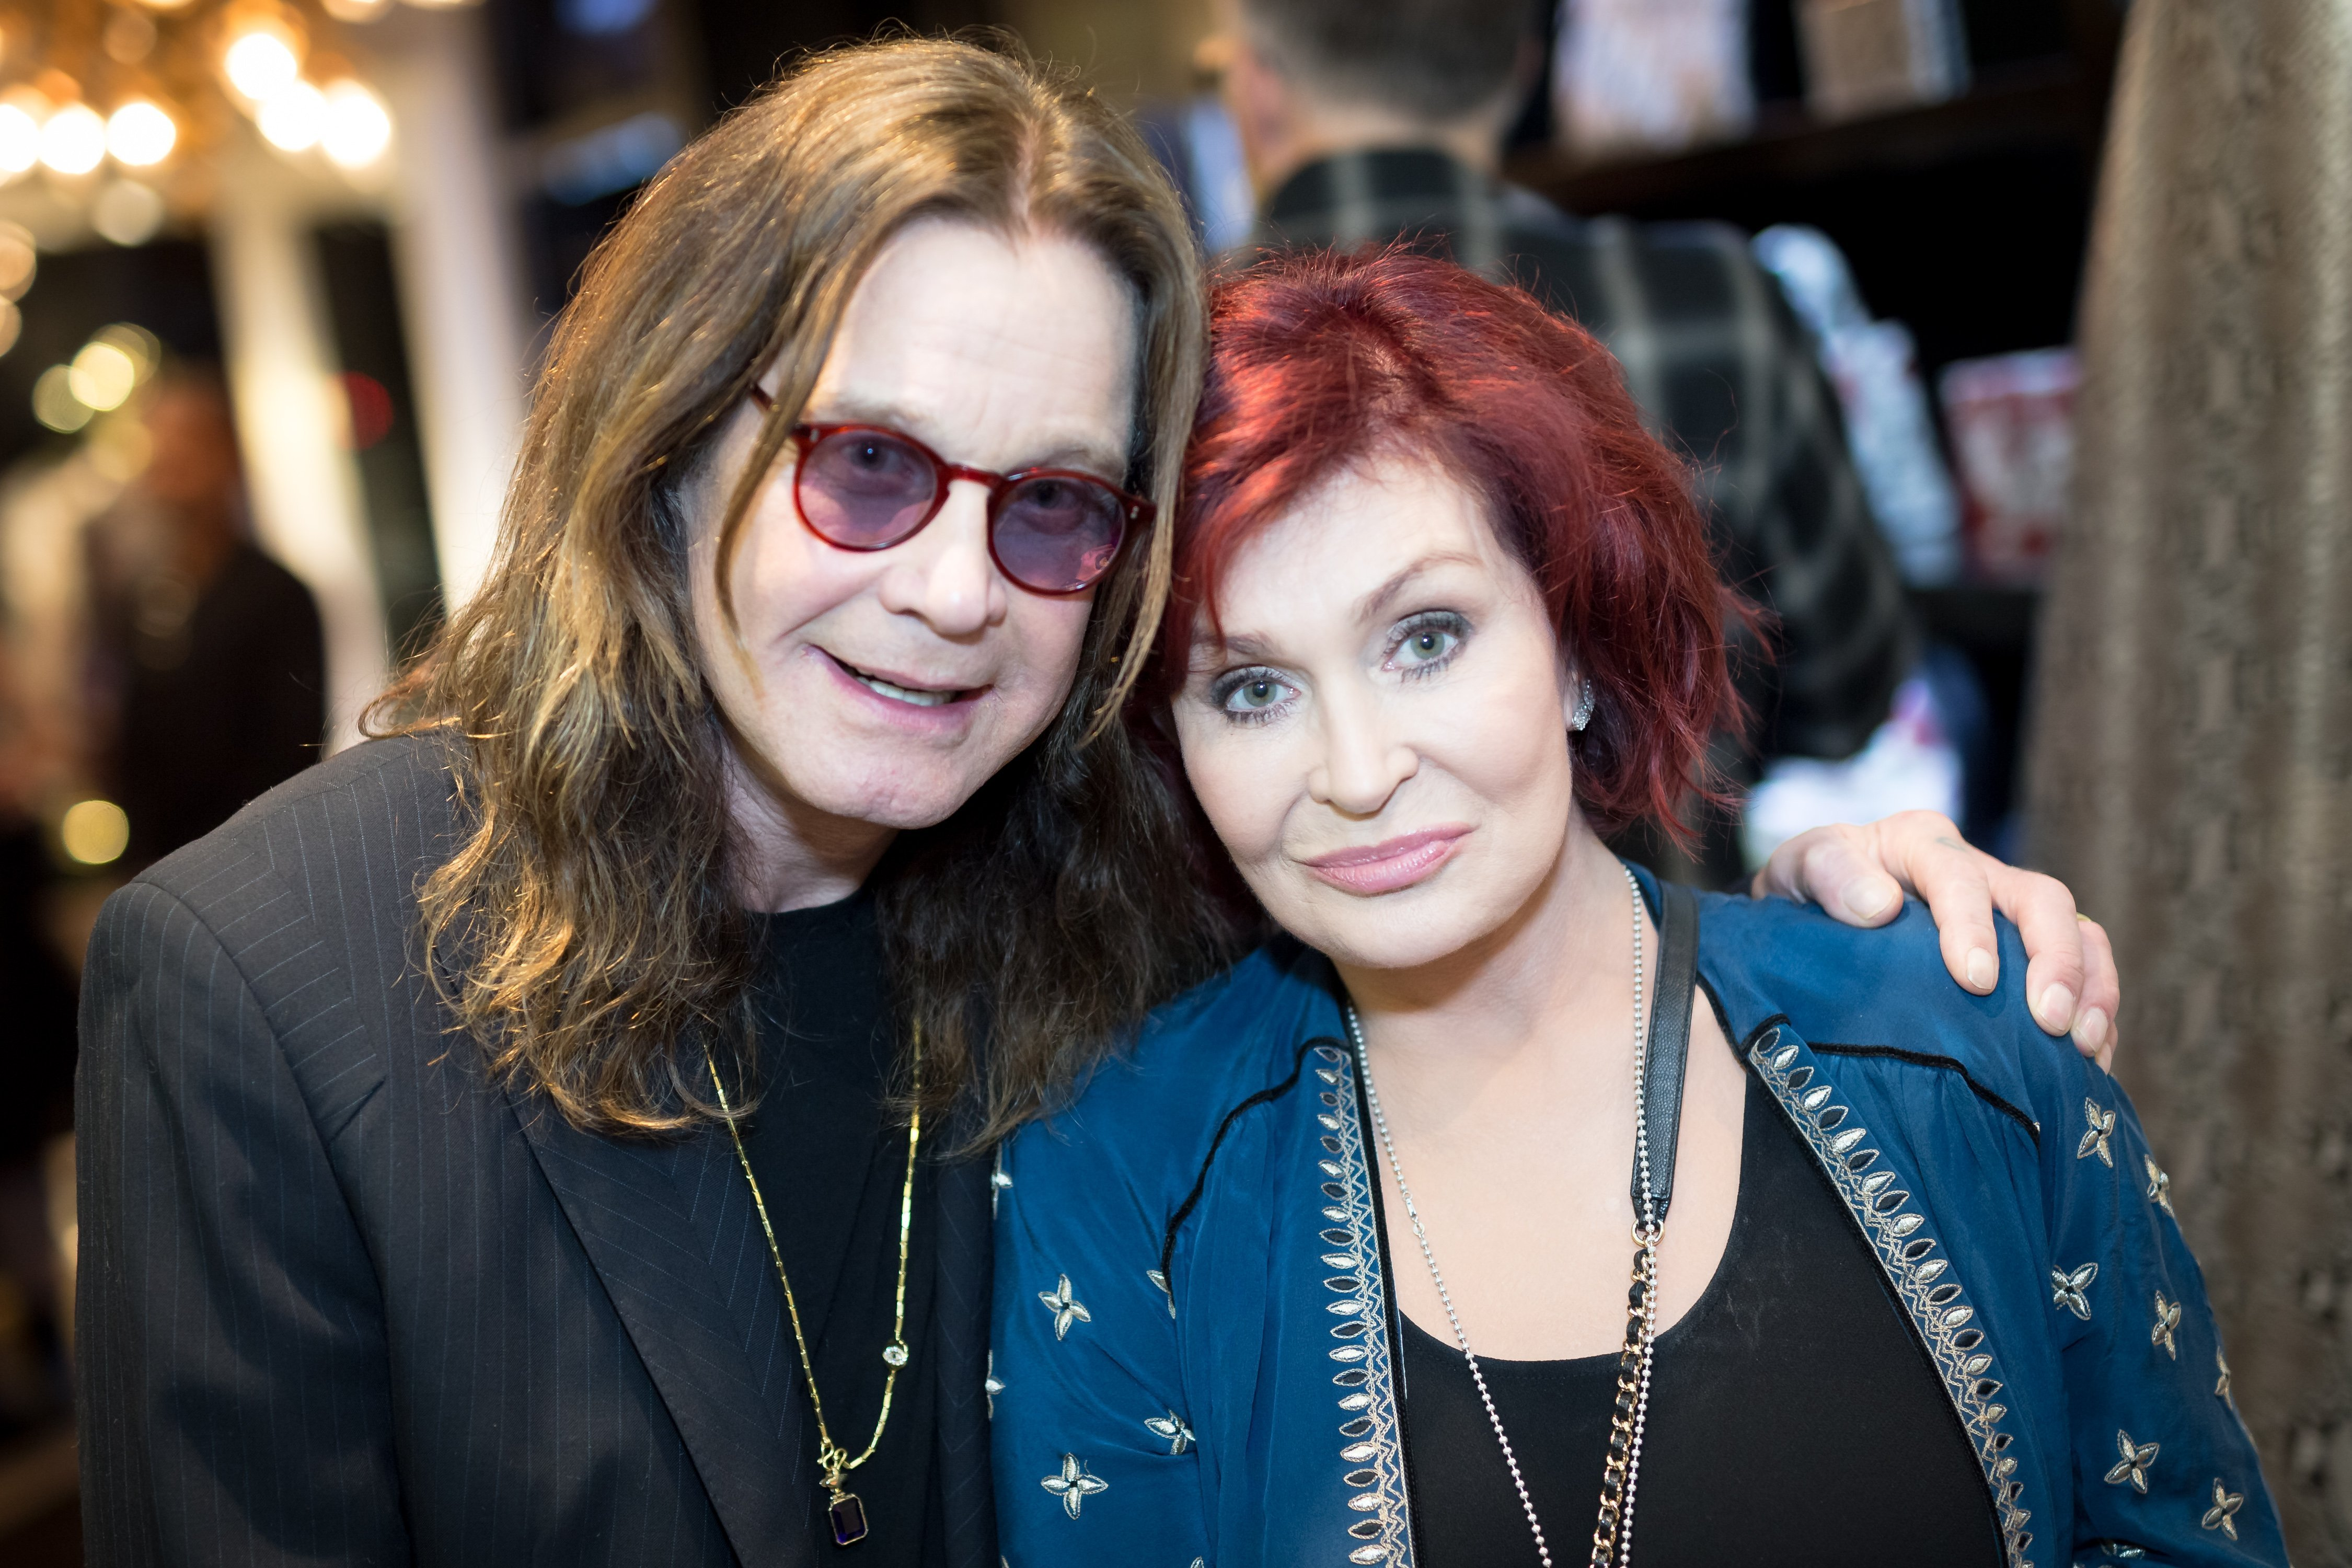 Ozzy Osbourne and Sharon Osbourne attend the Billy Morrison - Aude Somnia Solo Exhibition at Elisabeth Weinstock | Source: Getty Images